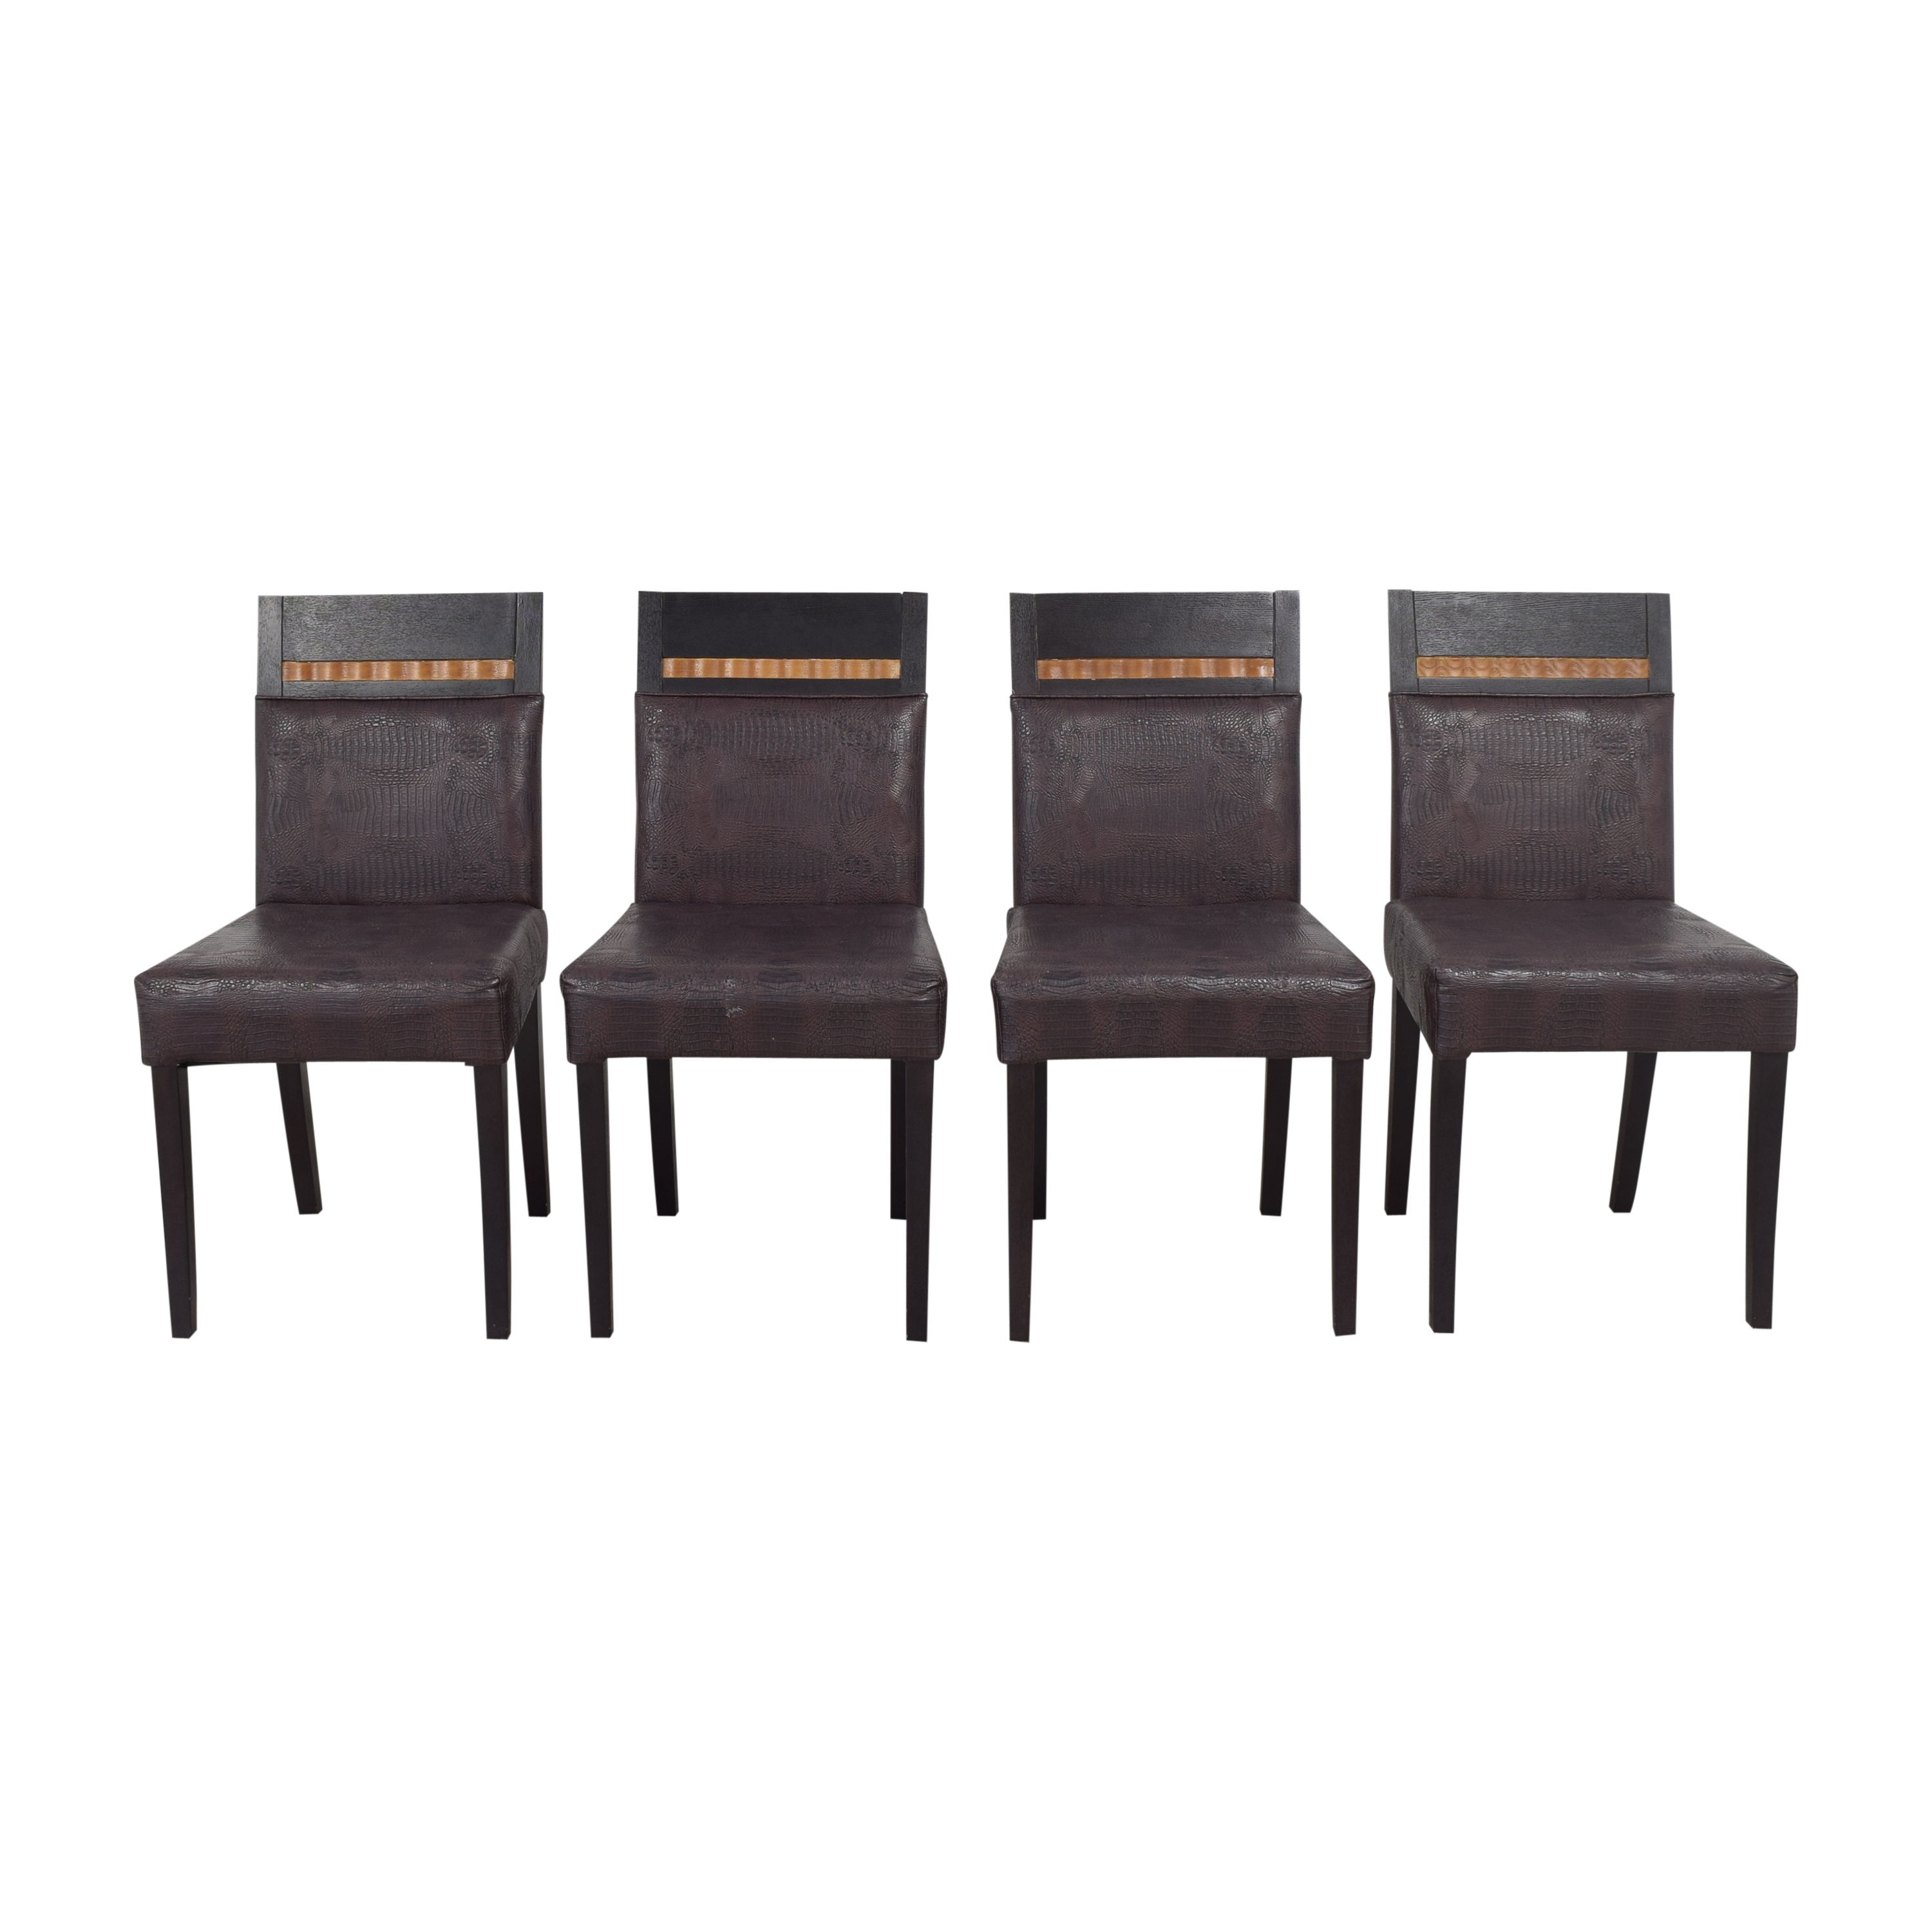 Modern Upholstered Dining Chairs coupon